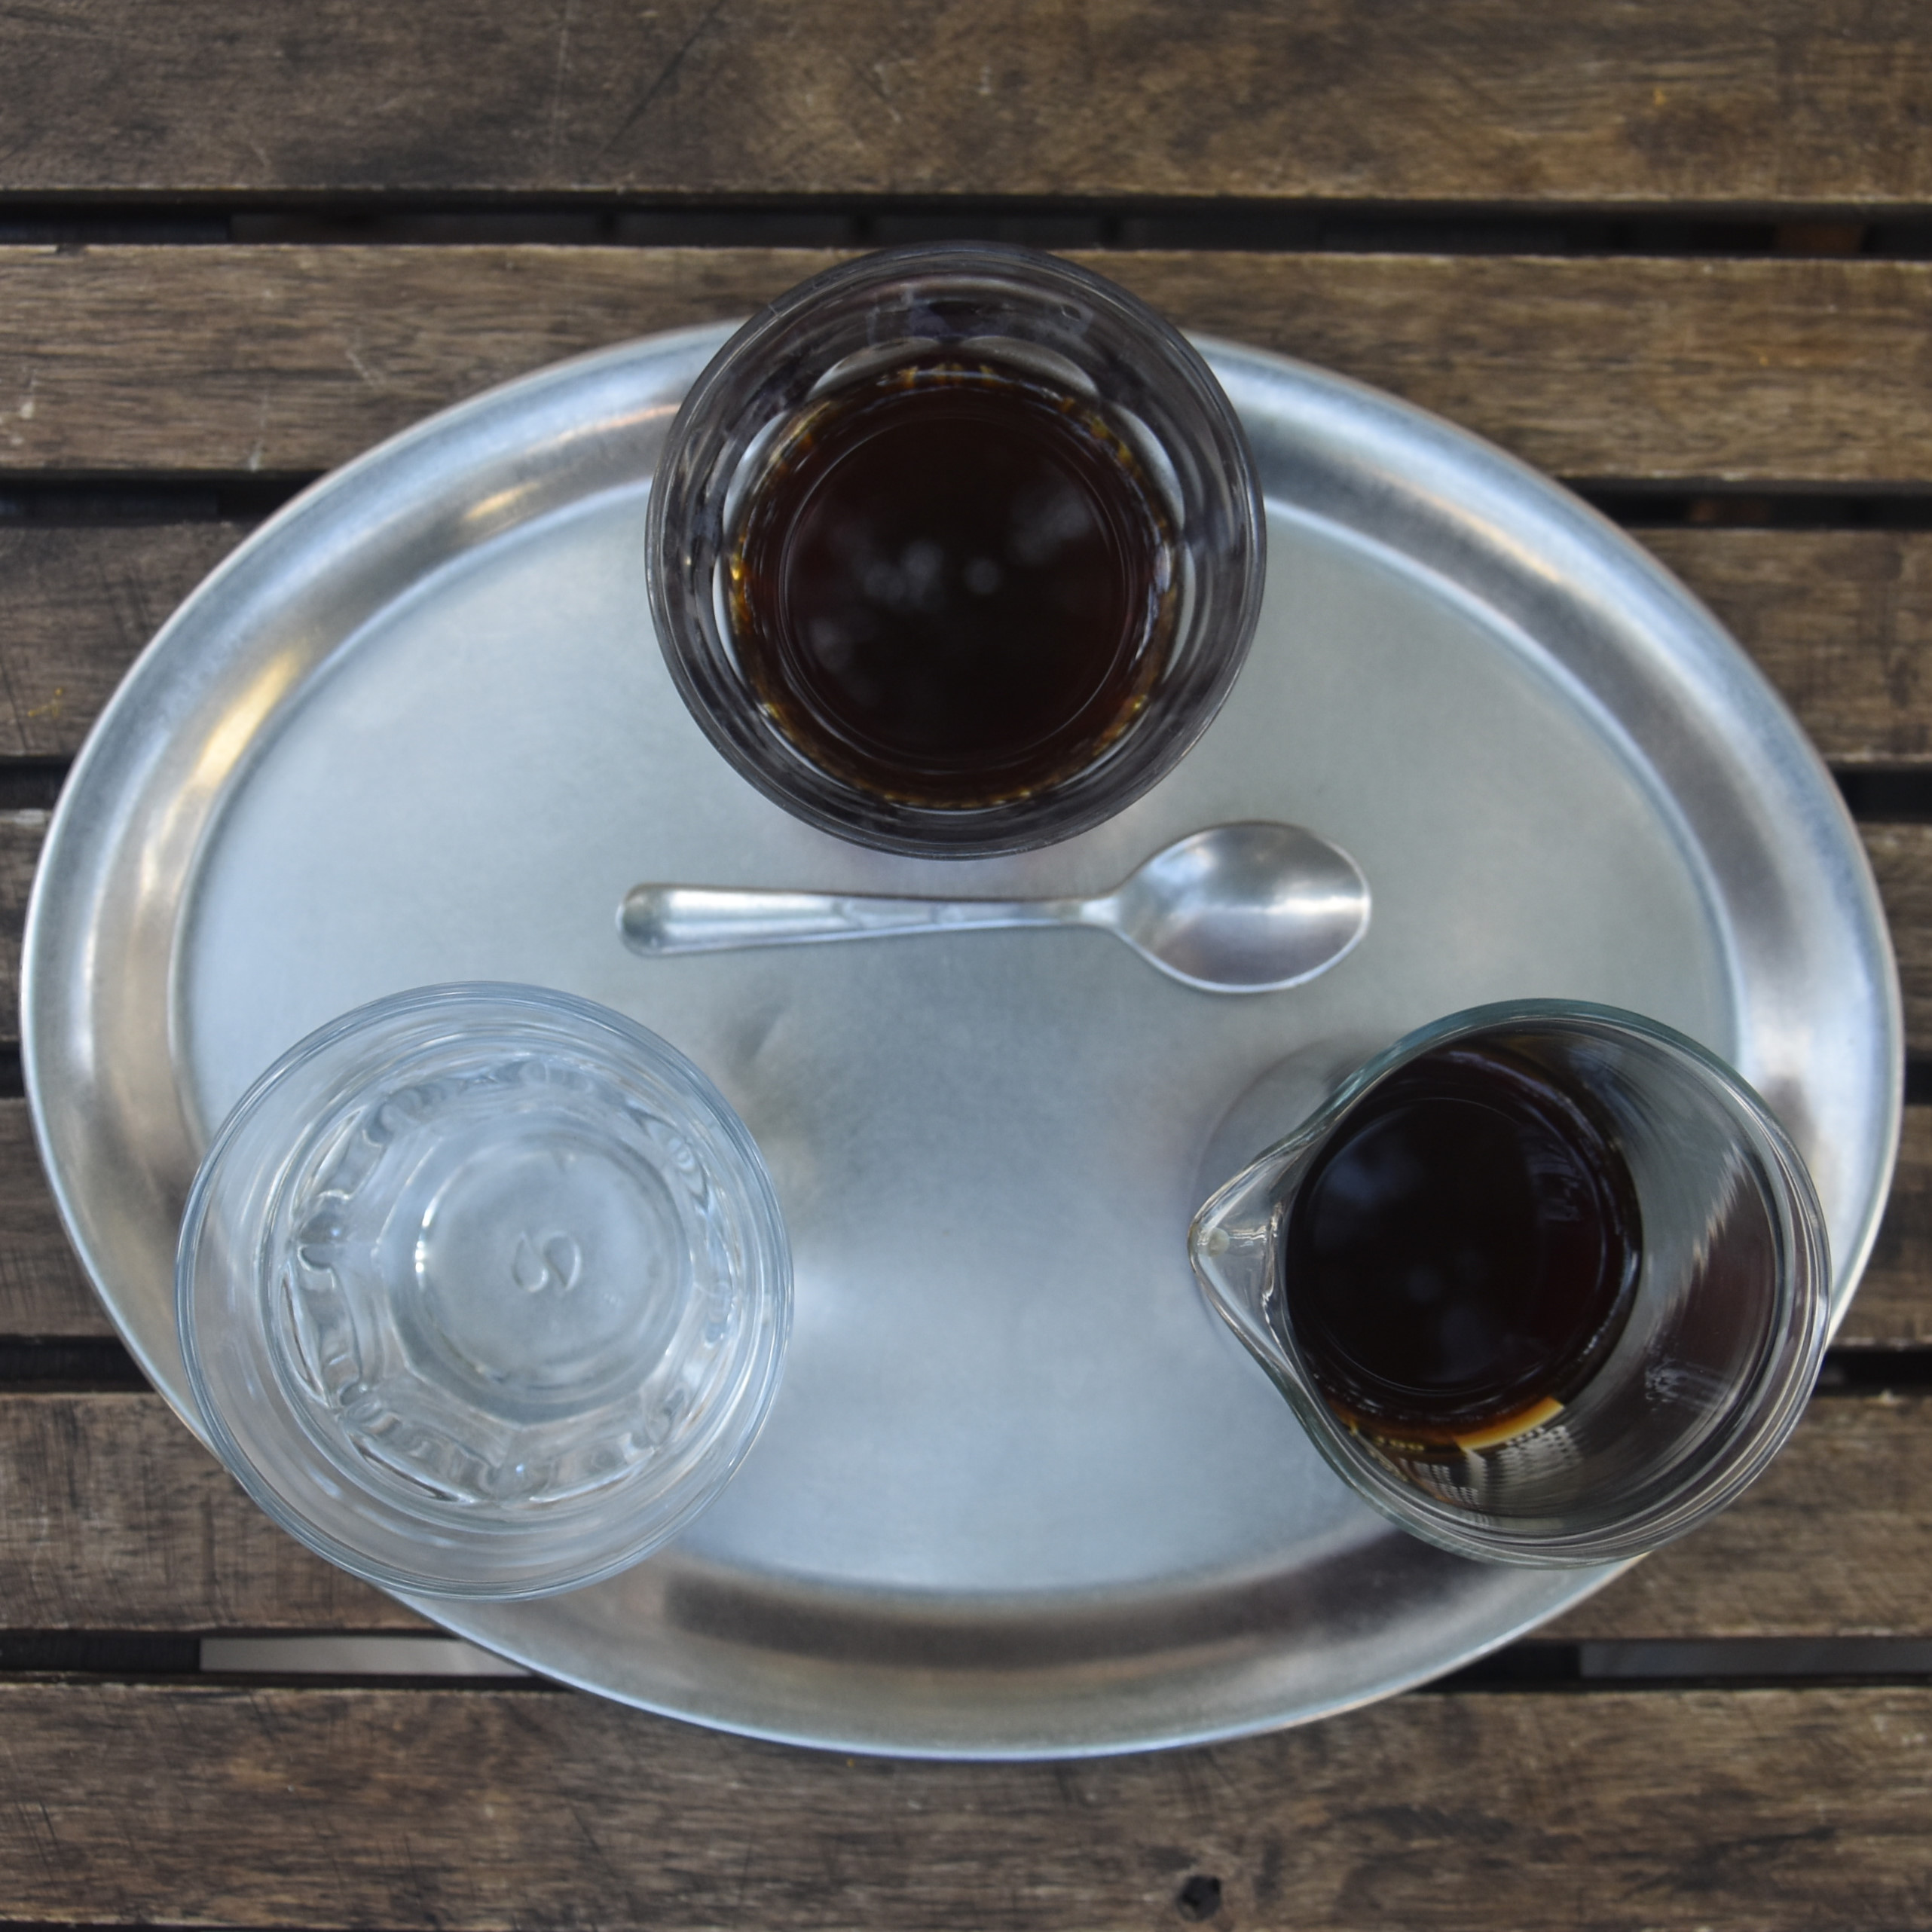 My pour-over, a natural Nicaraguan single-origin, presented in a carafe on an oval tray, along with a glass of water at Mamacoffee Londýnská in Prague.